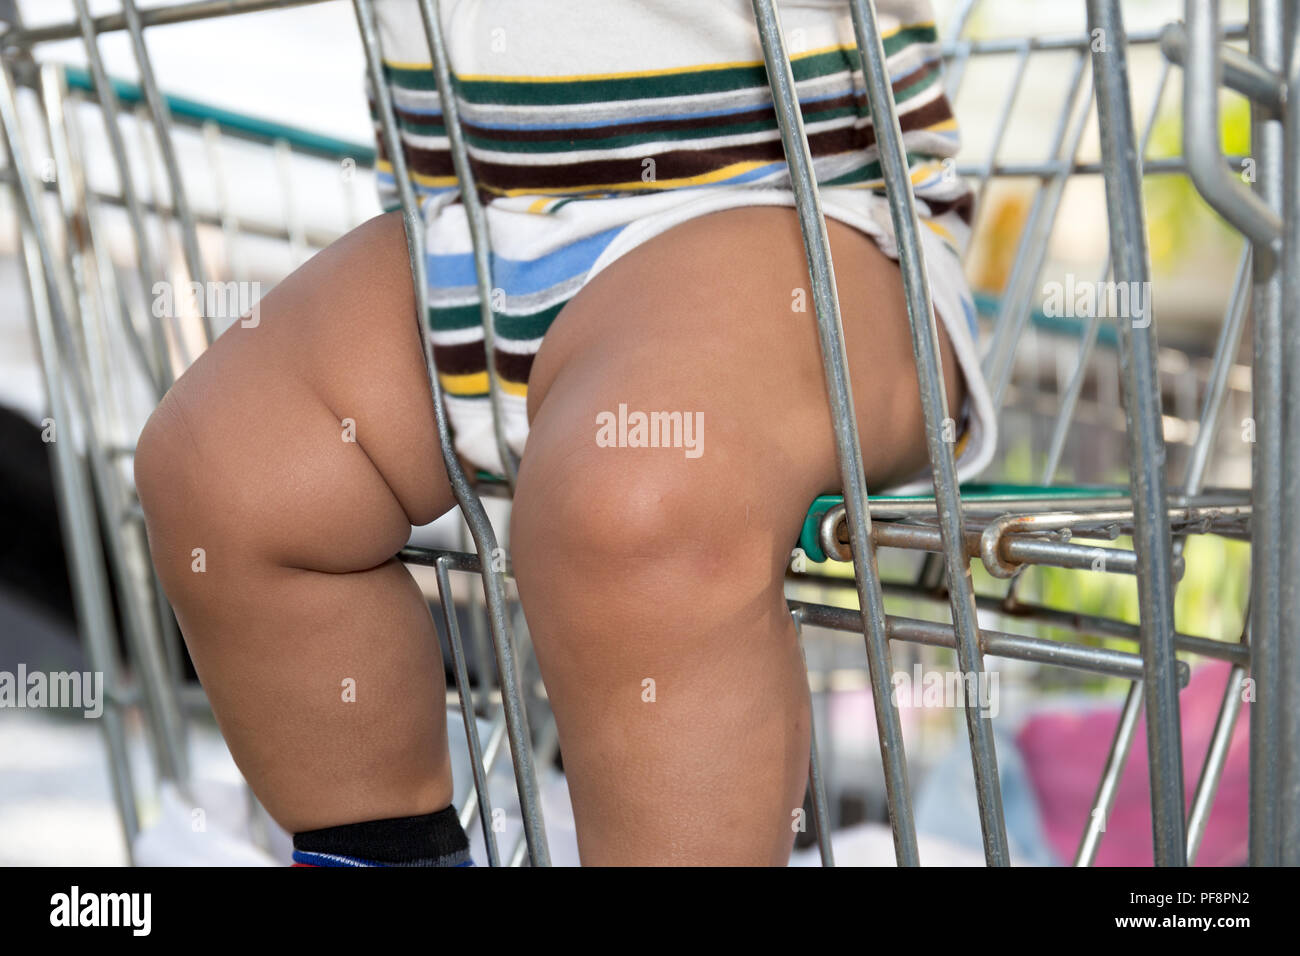 Asian chubby child sits in shopping trolley i - Stock Image